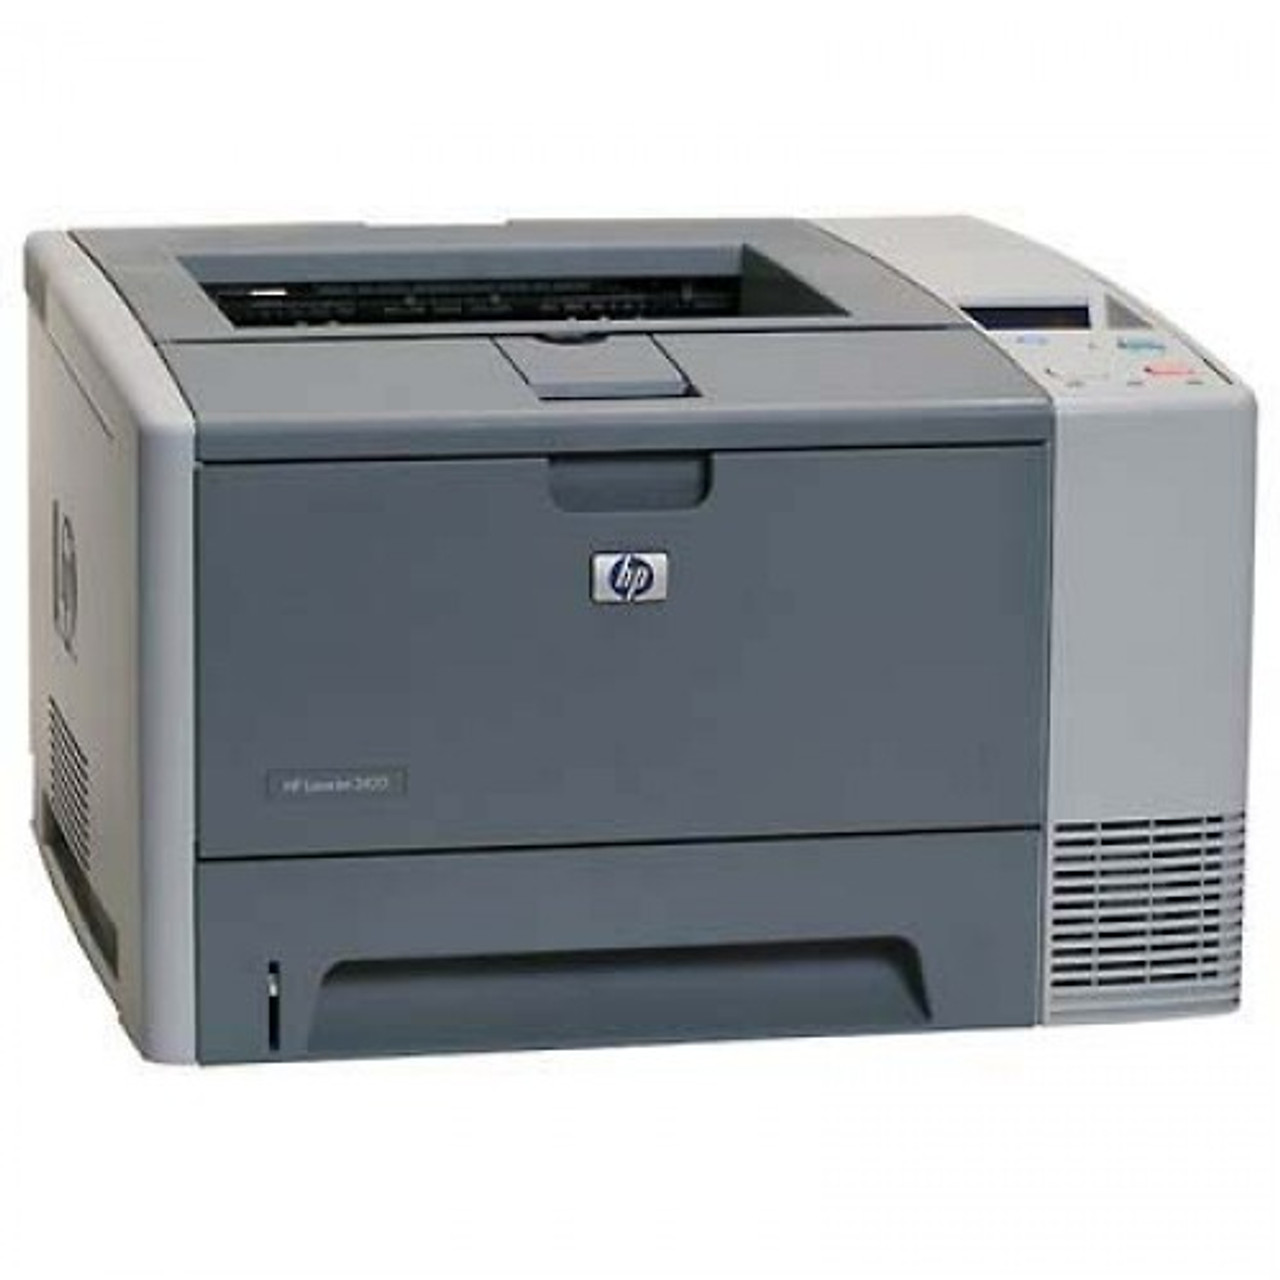 HP LaserJet 2420n - Q5958A - HP Laser Printer for sale